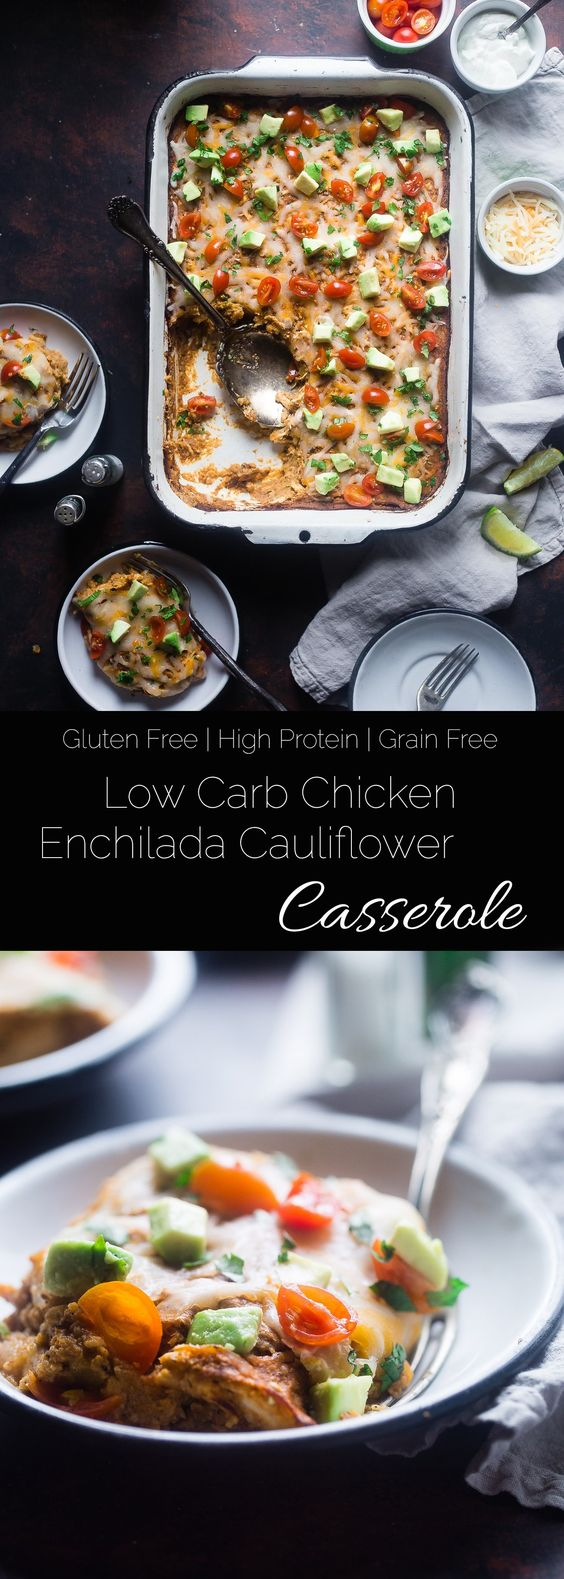 Low Carb Chicken Enchilada Casserole - This healthy casserole tastes like your favorite Mexican dish, but is made with cauliflower so it's low carb and under 300 calories! It's a gluten free, weeknight meal that everyone will love! Great for meal prep too! | Foodfaithfitness.com | @FoodFaithFit